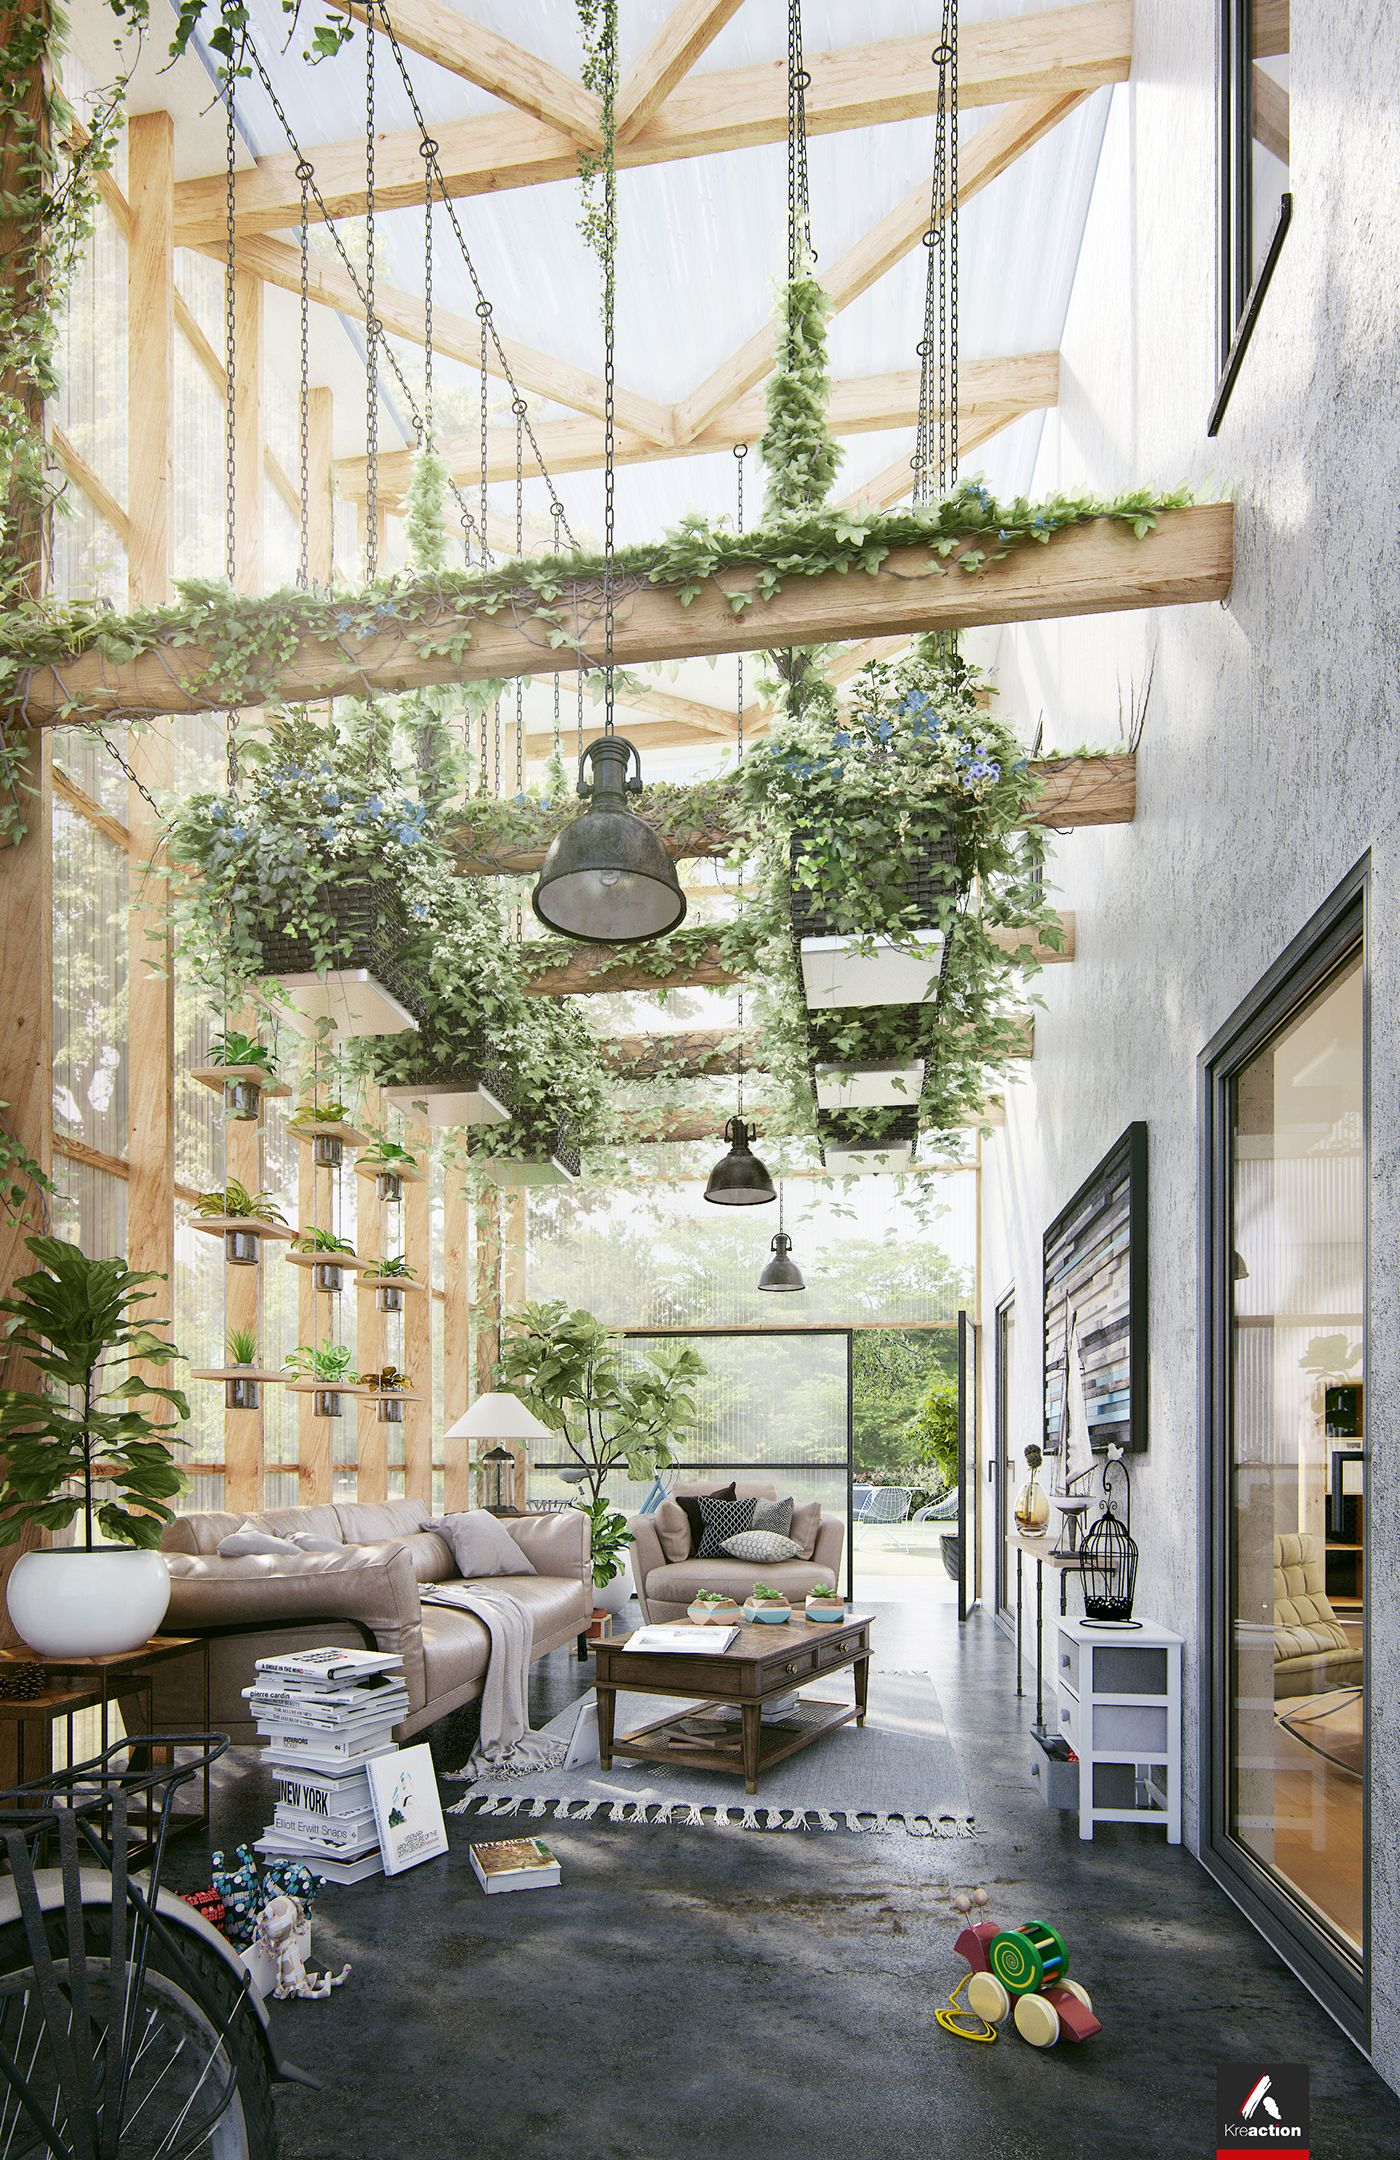 Green Room Garden Design: Talk About Going Green! Possibly An Inspiration Room. Ask